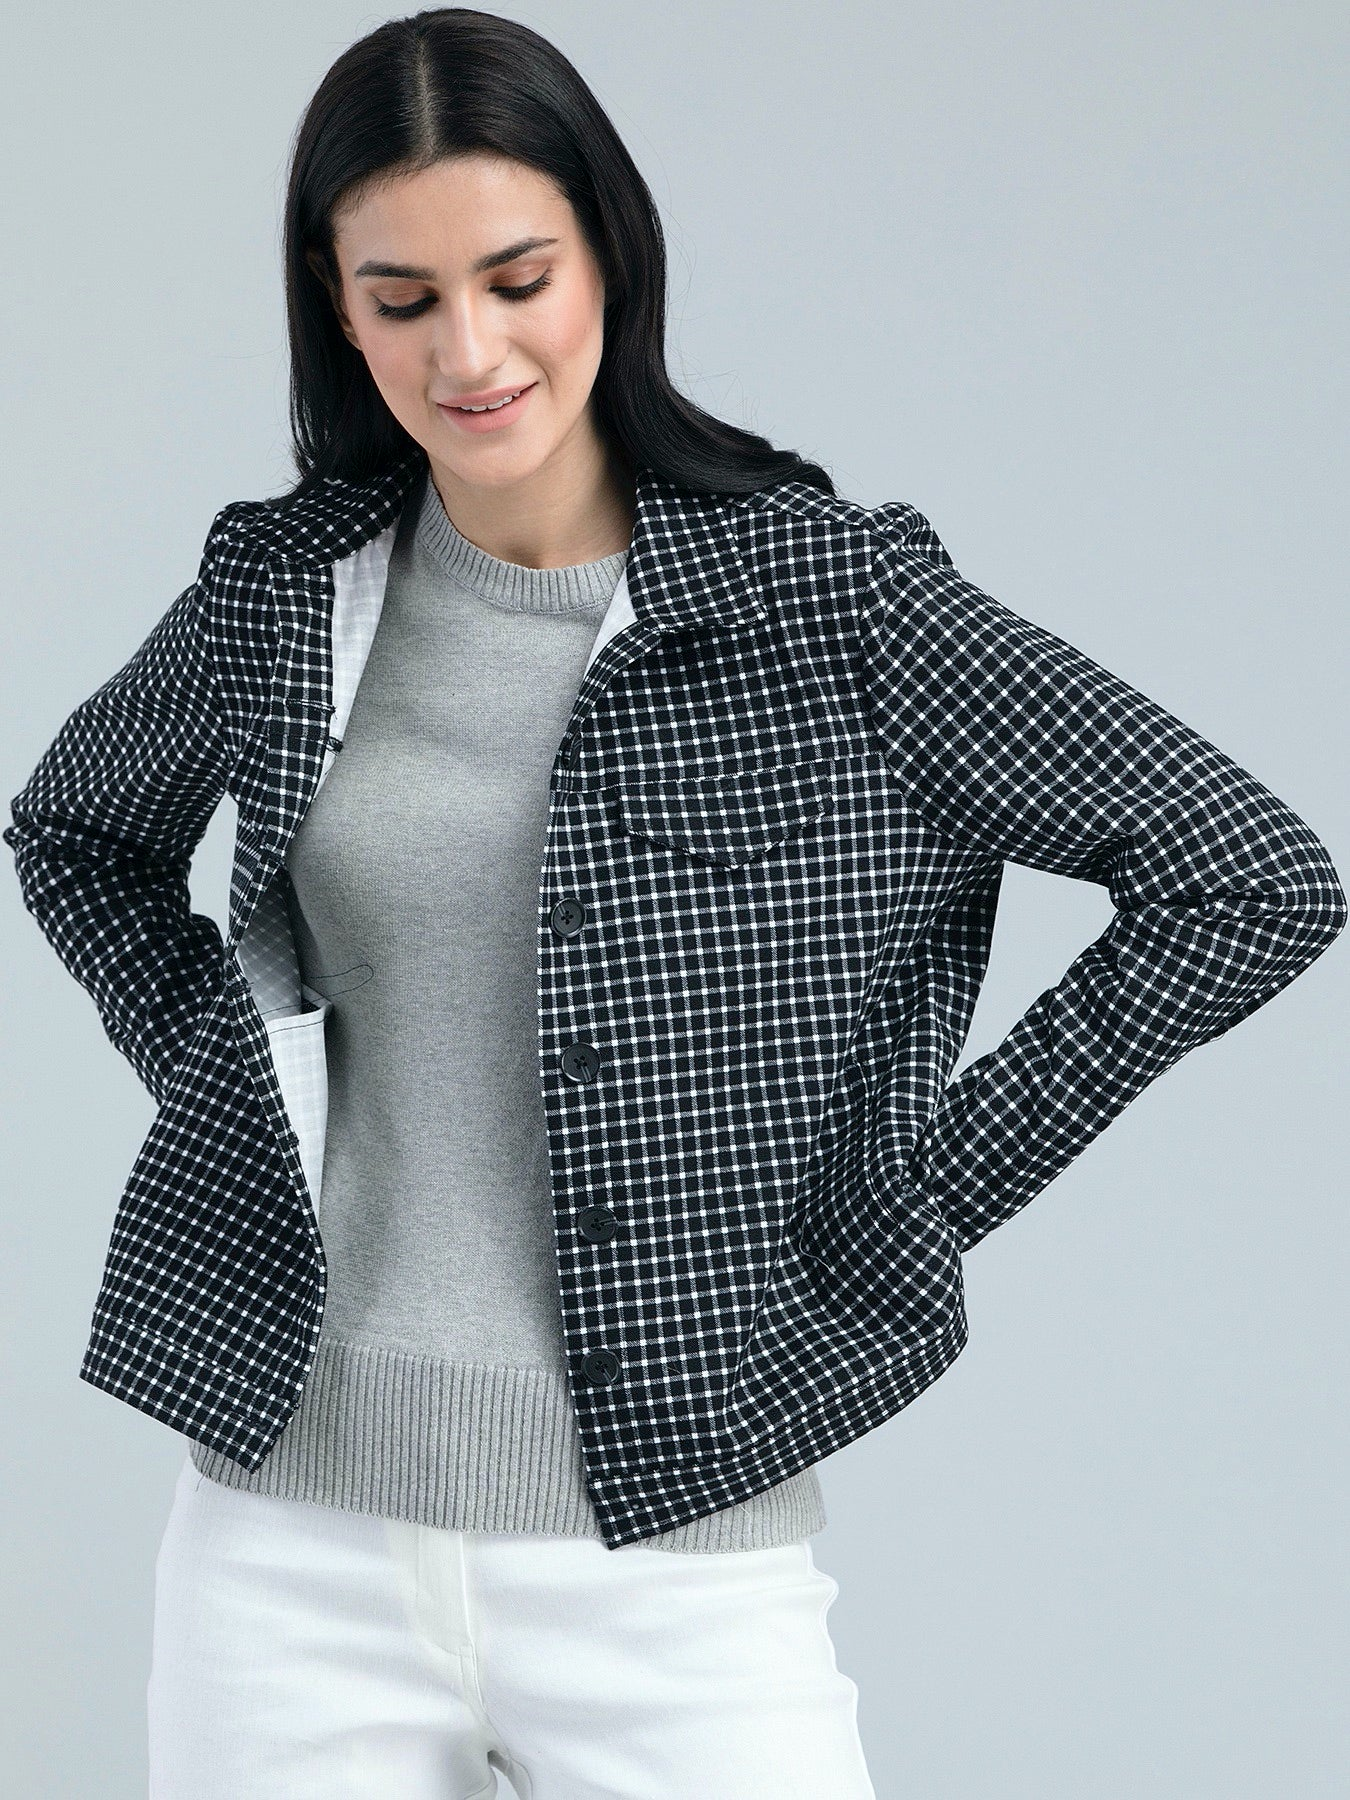 Cotton Twill Check Jacket - Black and White